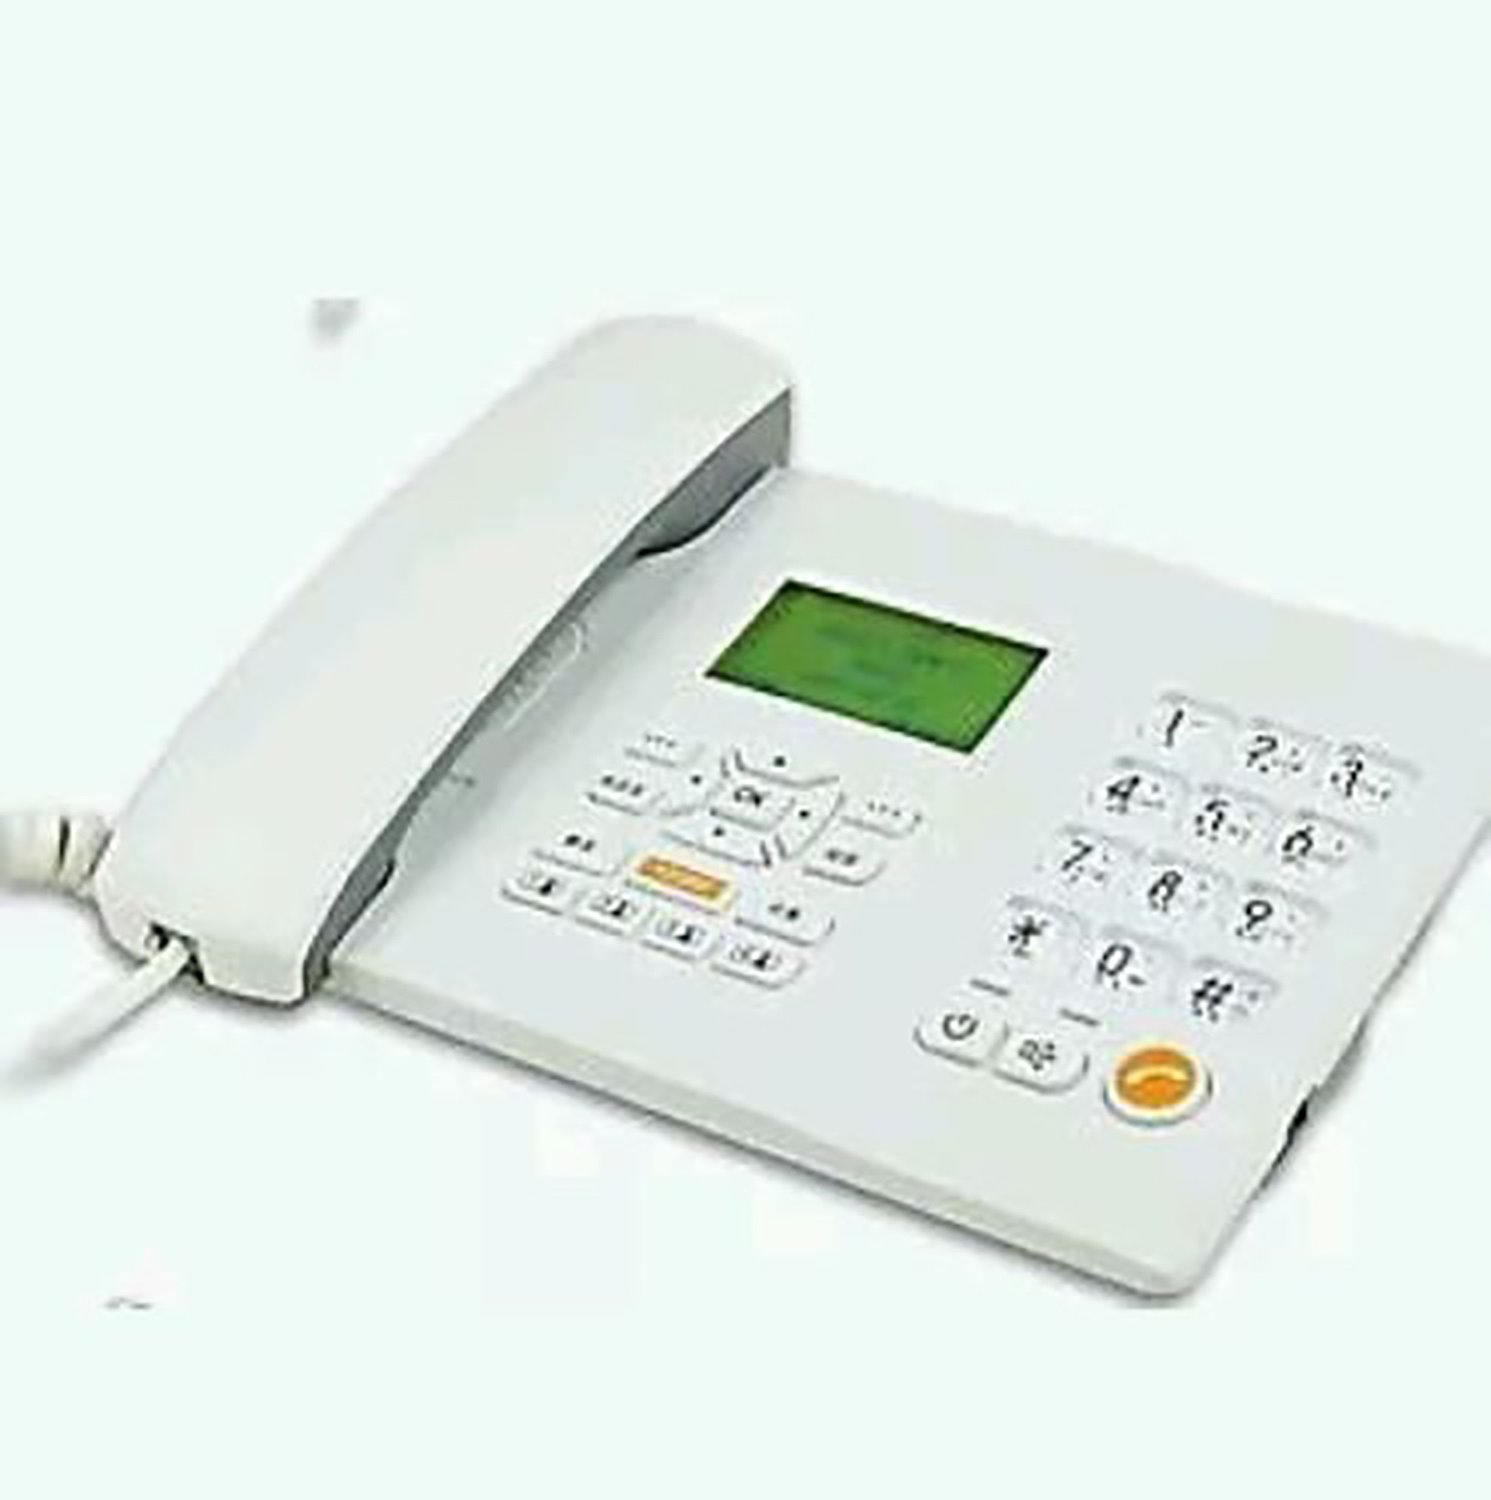 Huawei f501 gsm wireless landline phone any type of gsm sim cards fwp - Huawei F501 Gsm Fwp Sim Card Based Wireless Landline Phone White Or Black New Arrival Best Selling Premium Quality Lowest Price Cordless Crystal Clear